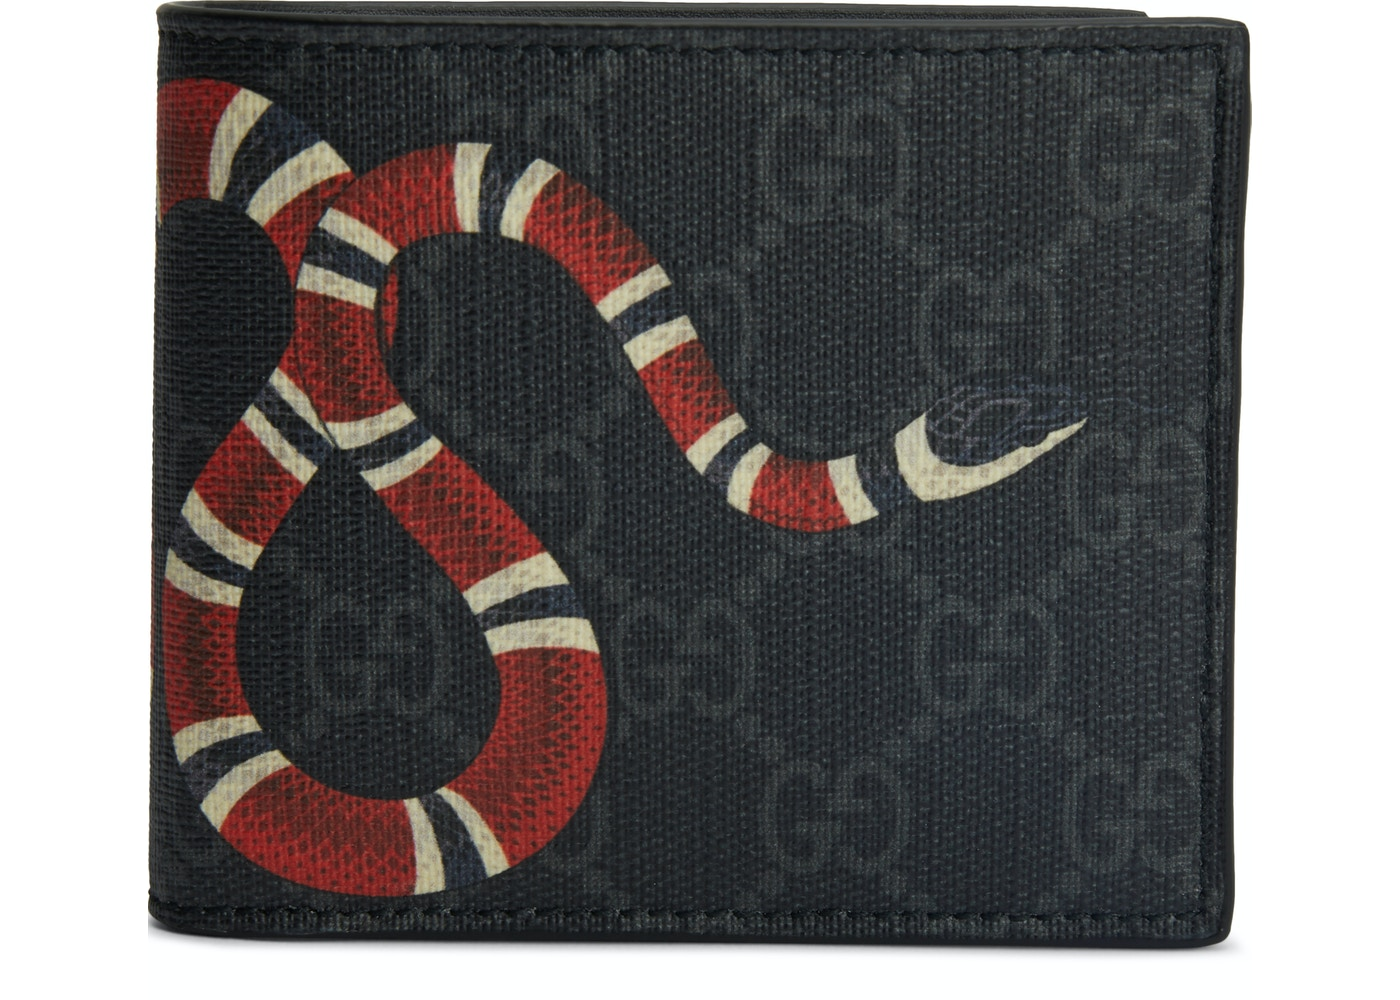 0b93334031d4 Gucci Kingsnake Wallet GG Supreme (8 Card Slots) Black